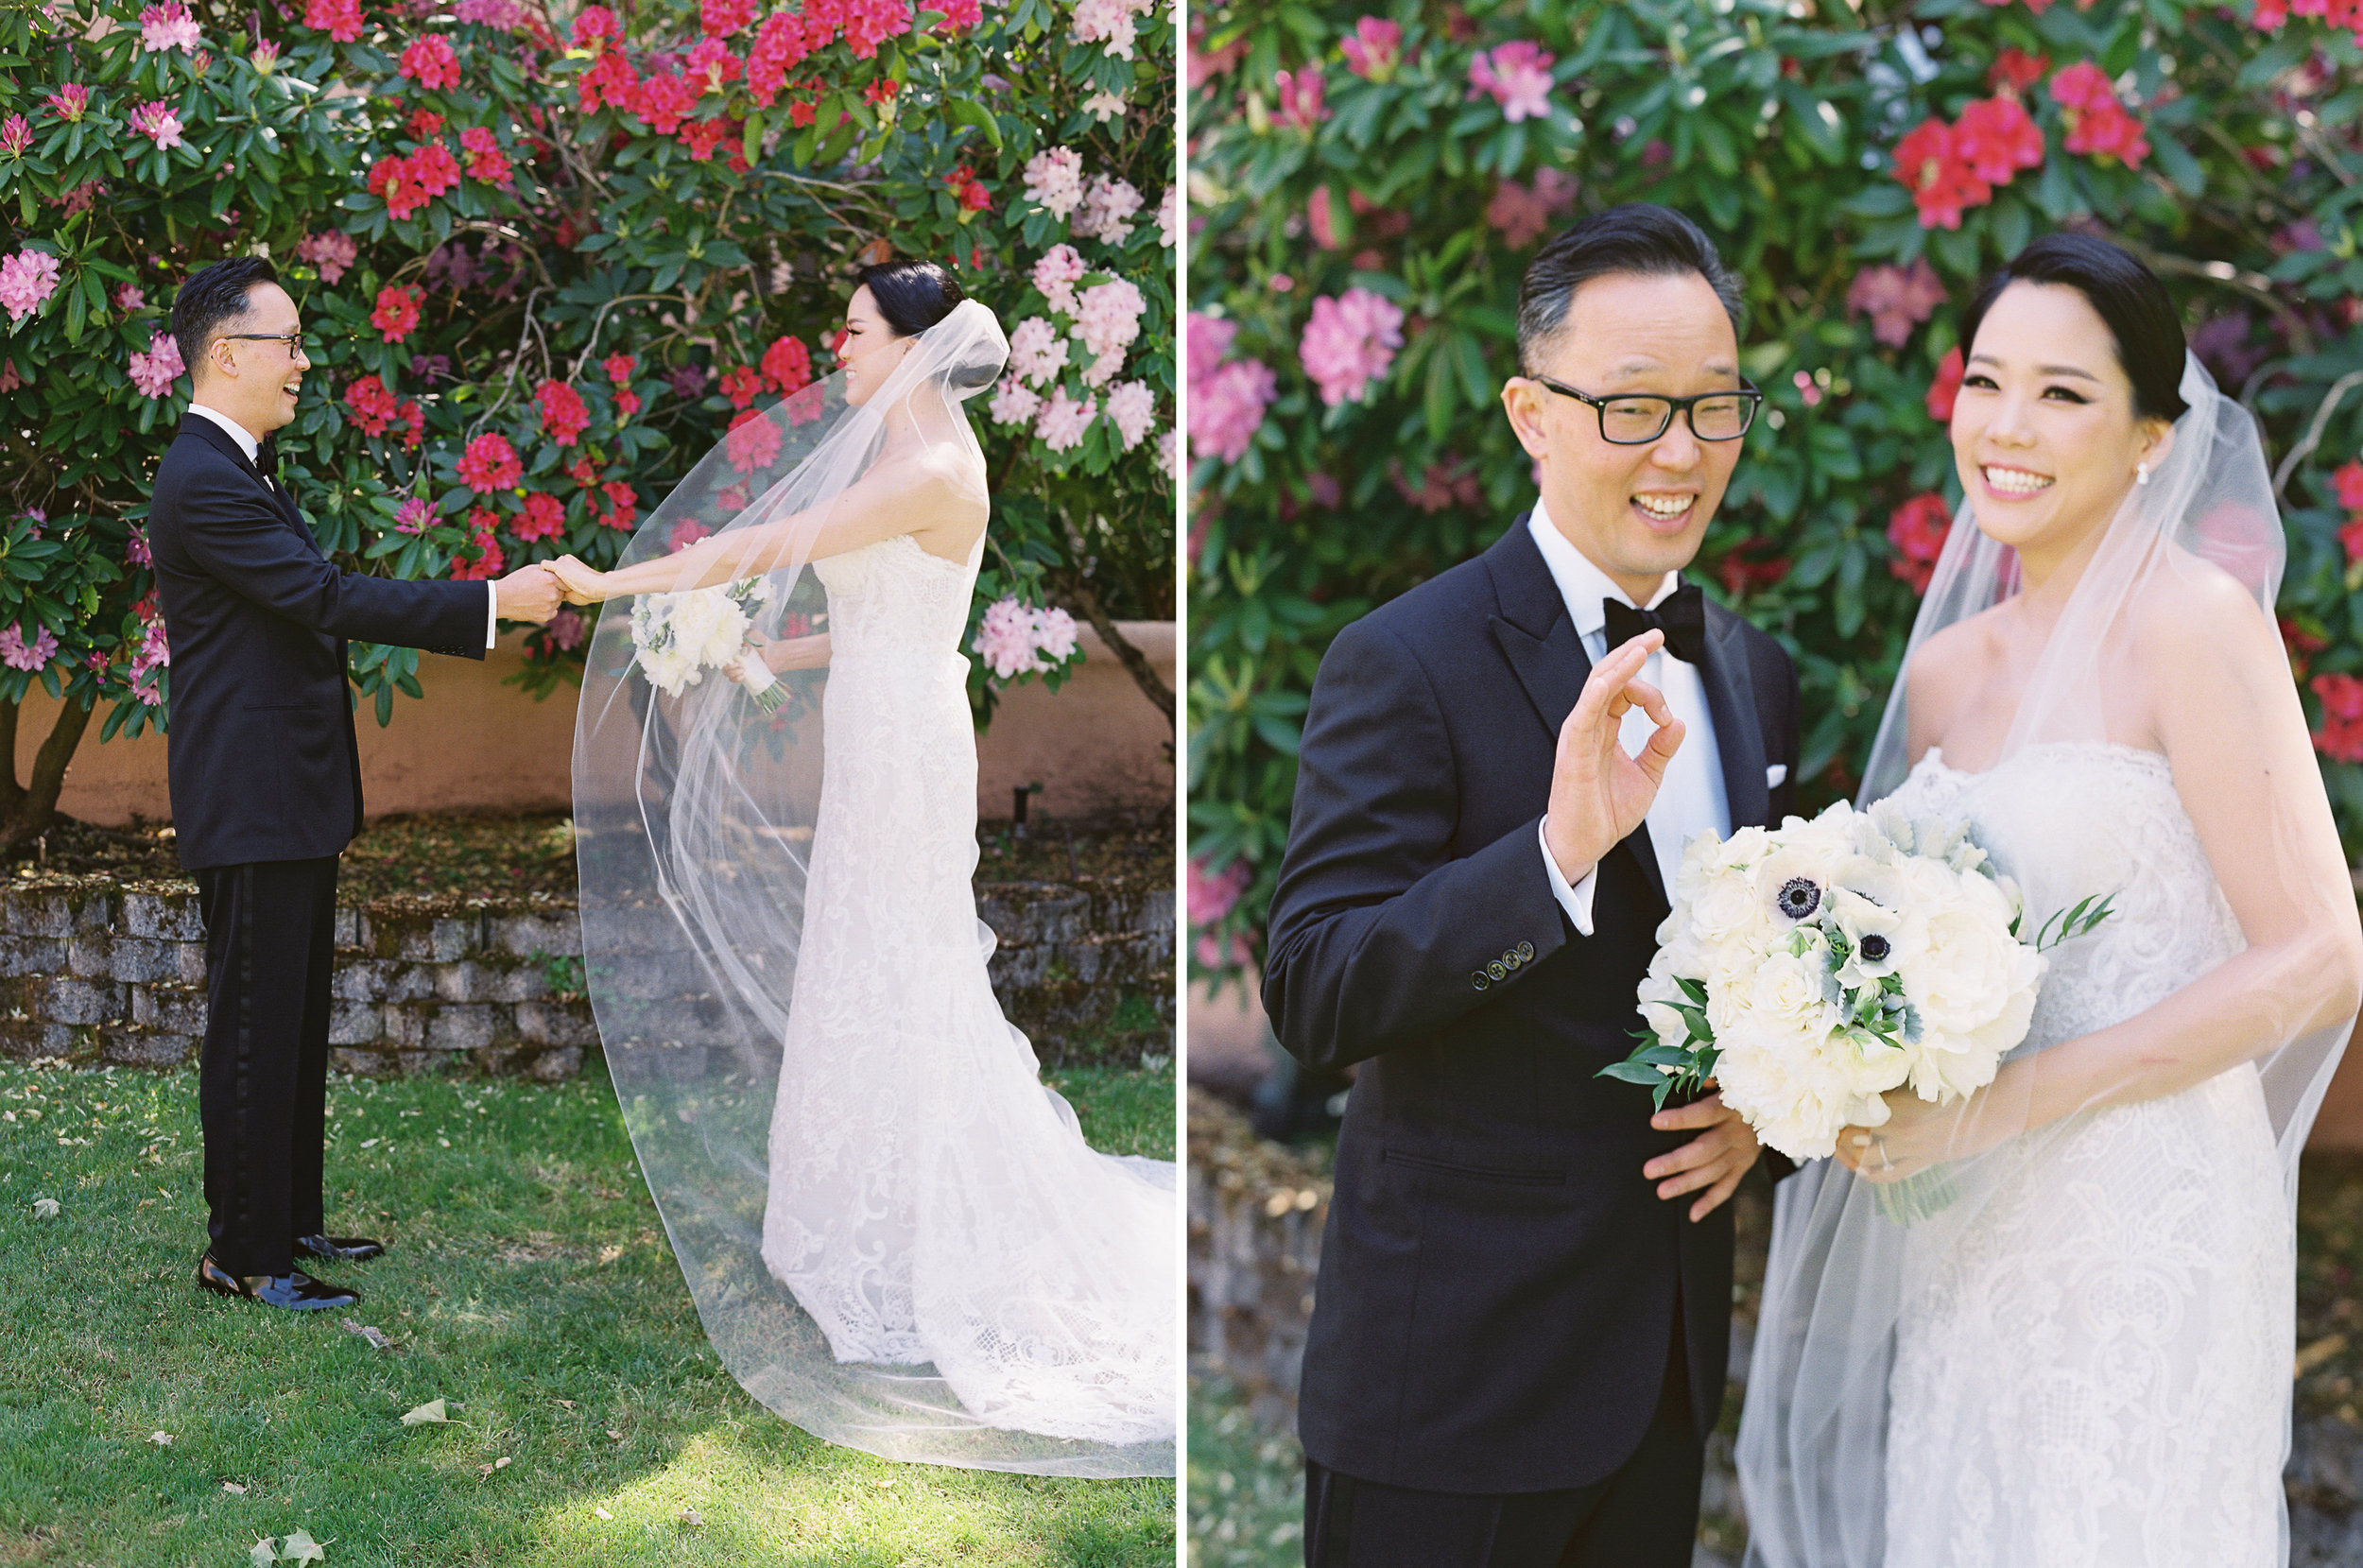 Meghan Mehan Photography - Sonoma Golf Club Wedding - California Film Wedding Photographer - 018.jpg